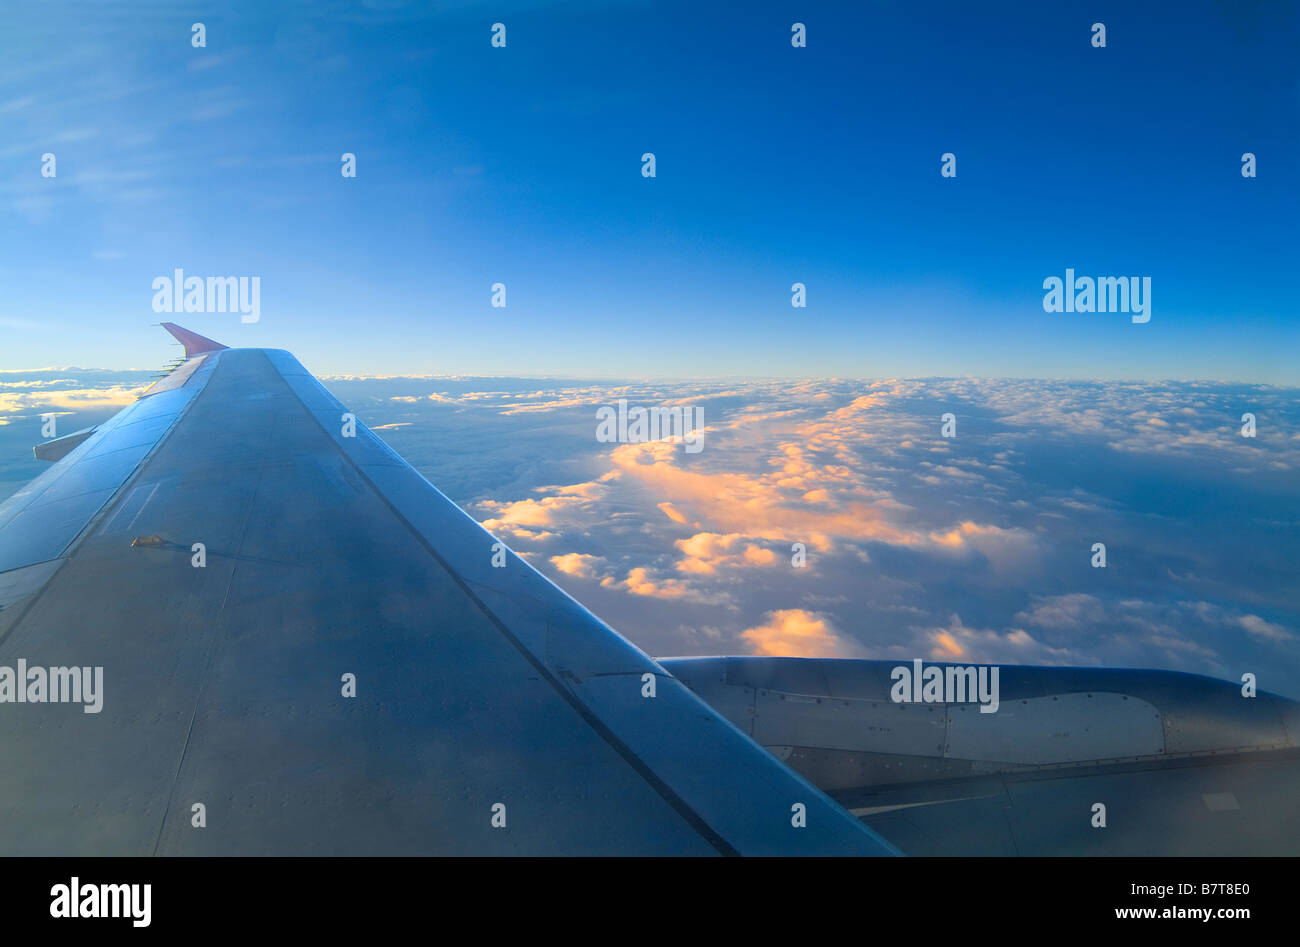 Airplane Wing With Blue Sky & Clouds - Stock Image